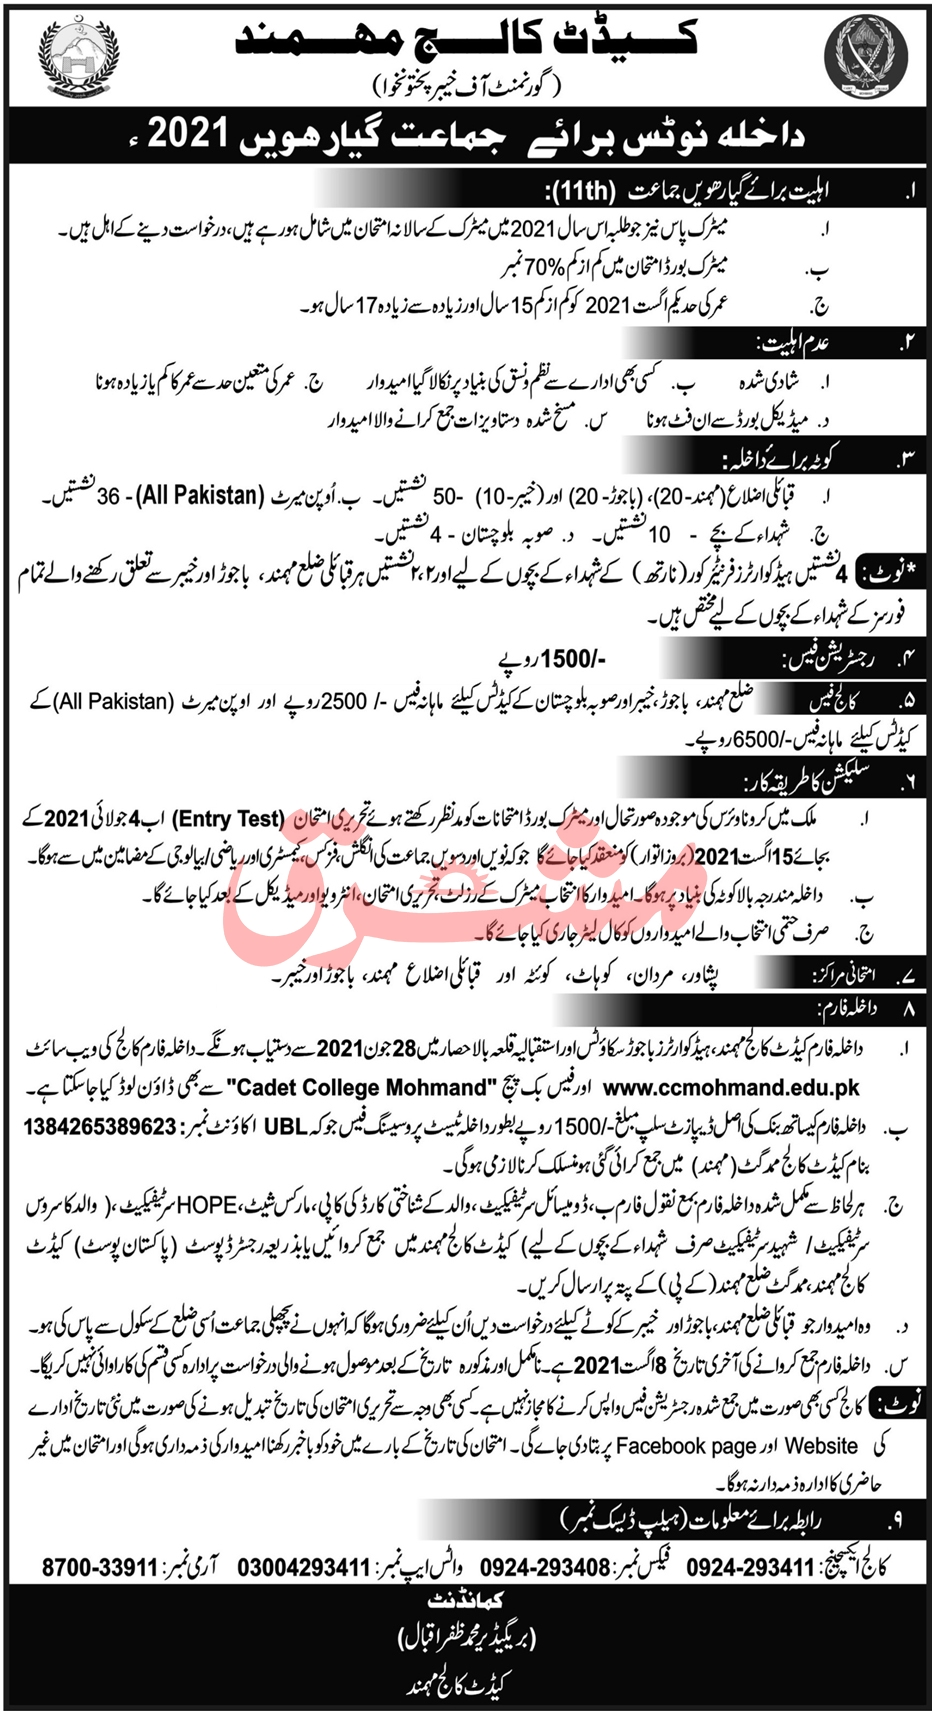 Cadet College Mamad Gat (Mohmand) Admission 2021, Form and Entry Test Result